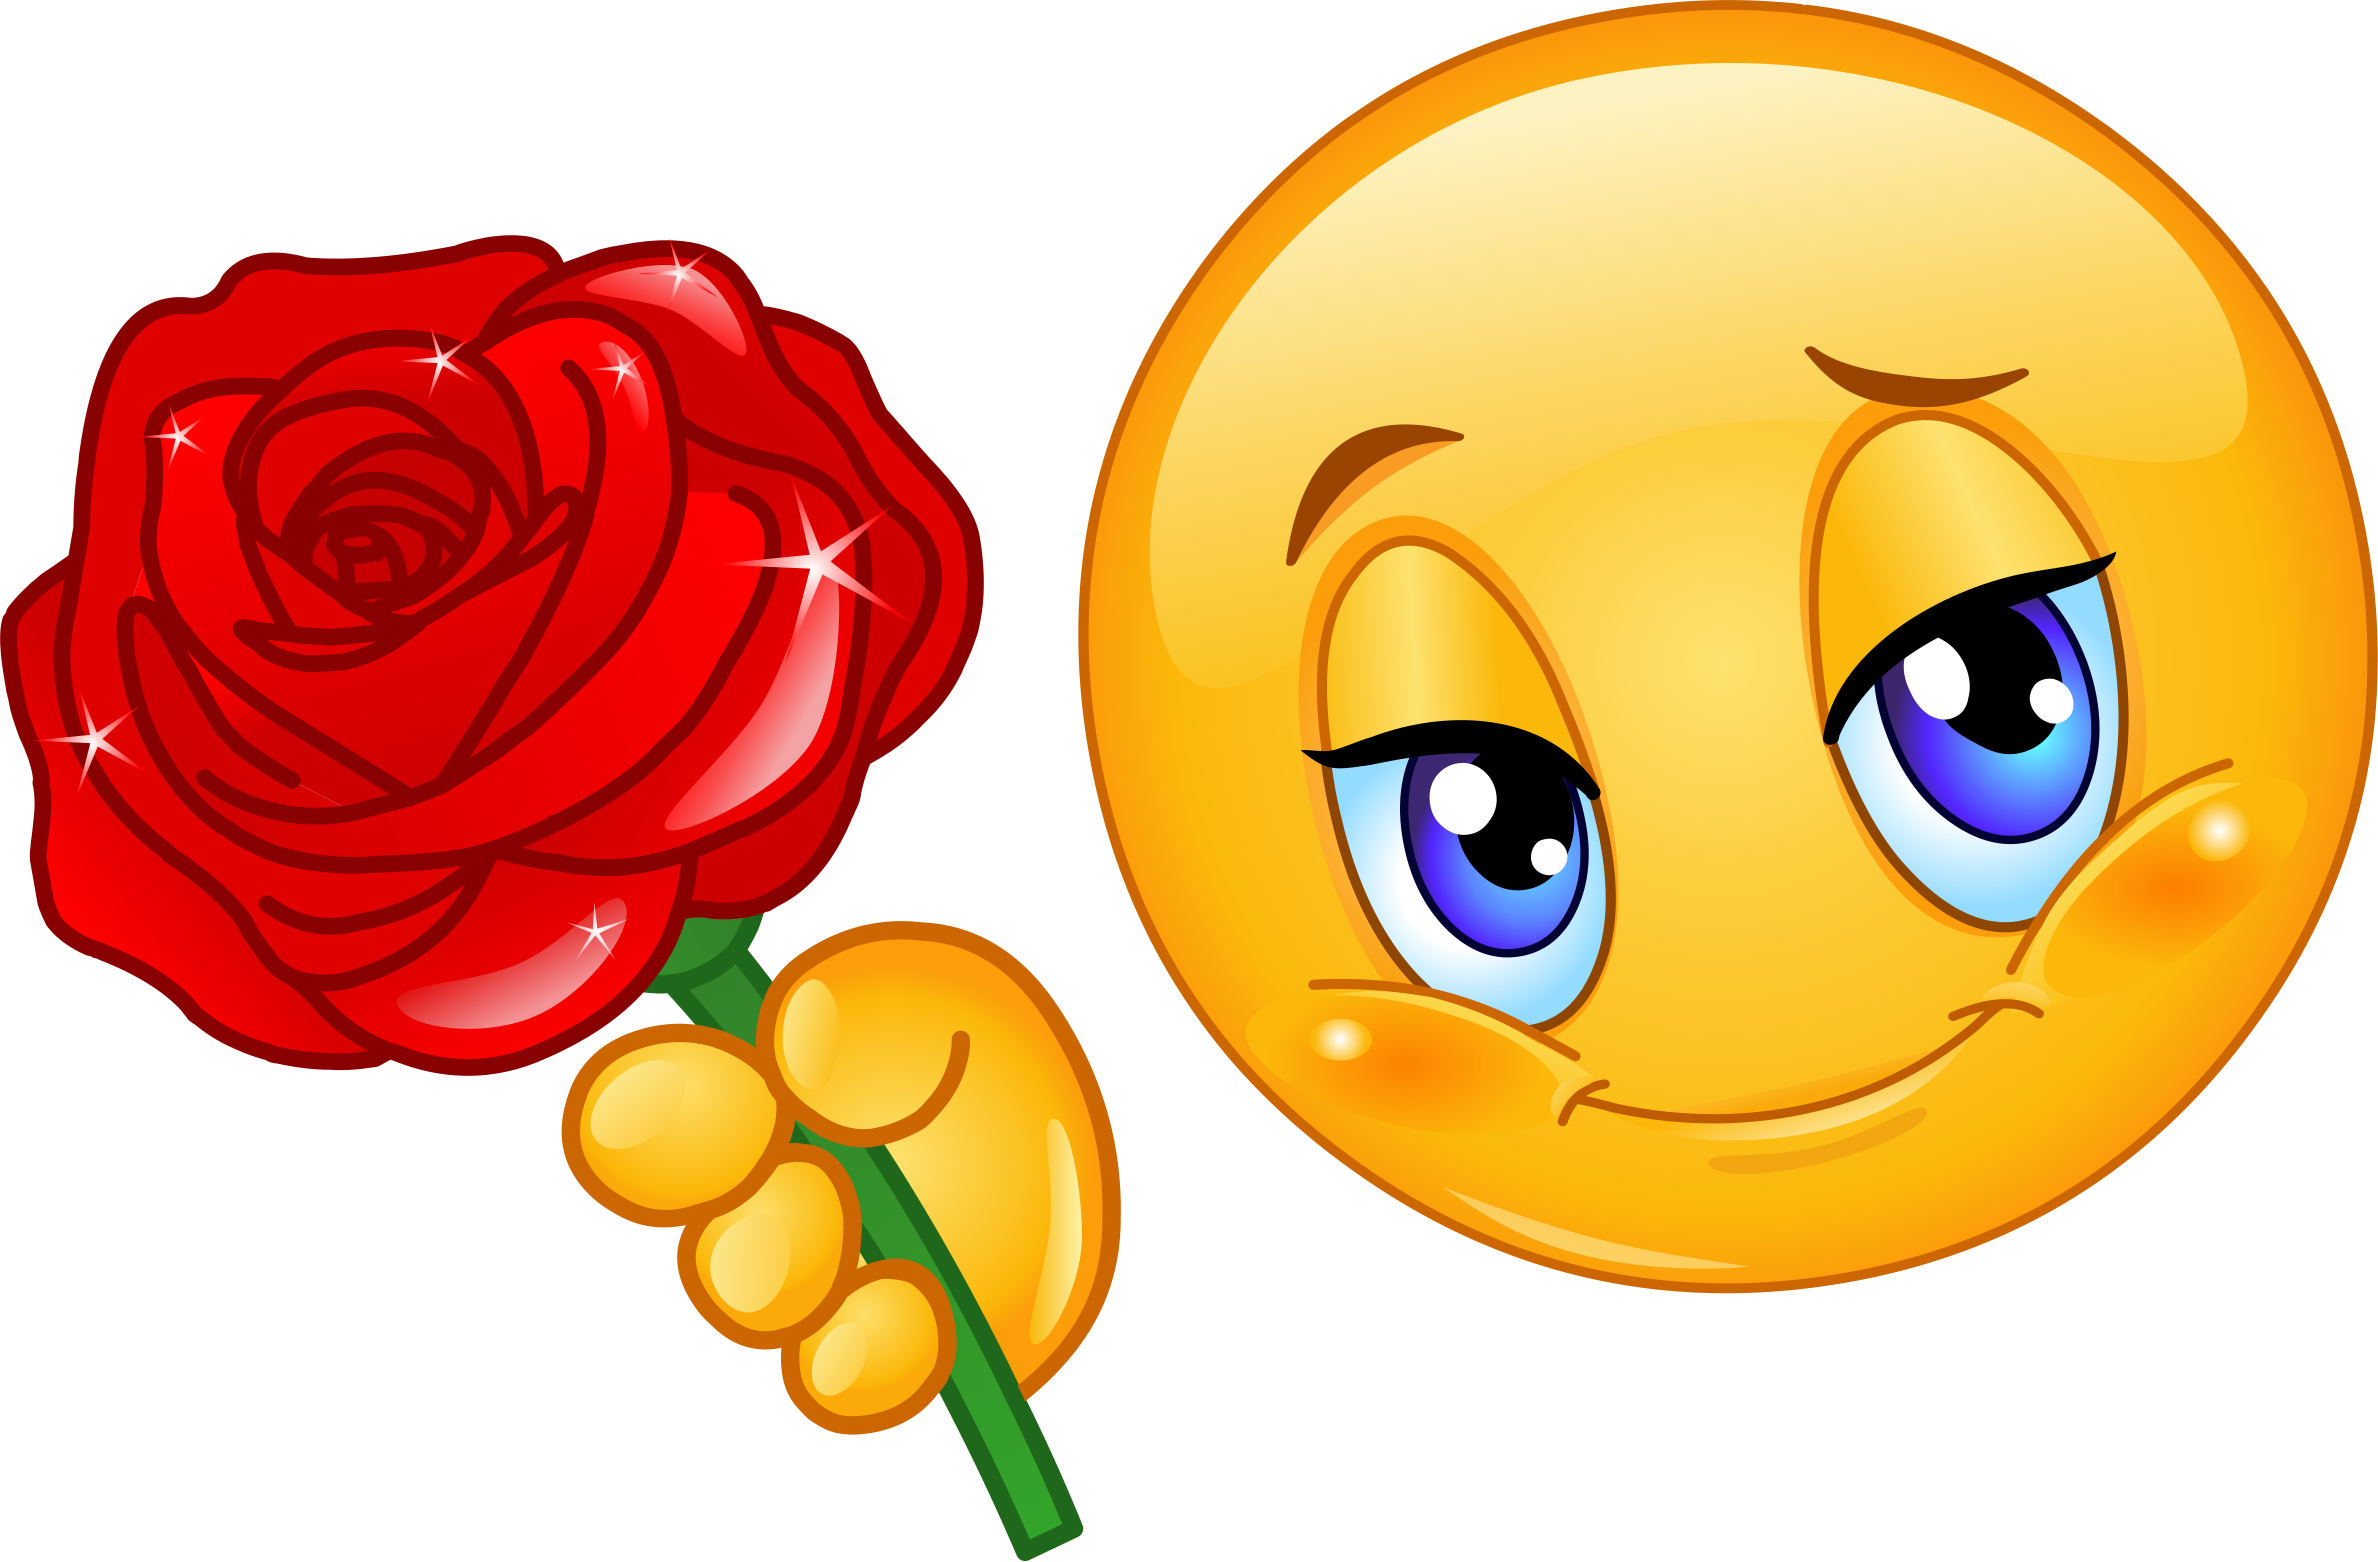 Roses clipart emoji. Rose decal hotsigns and